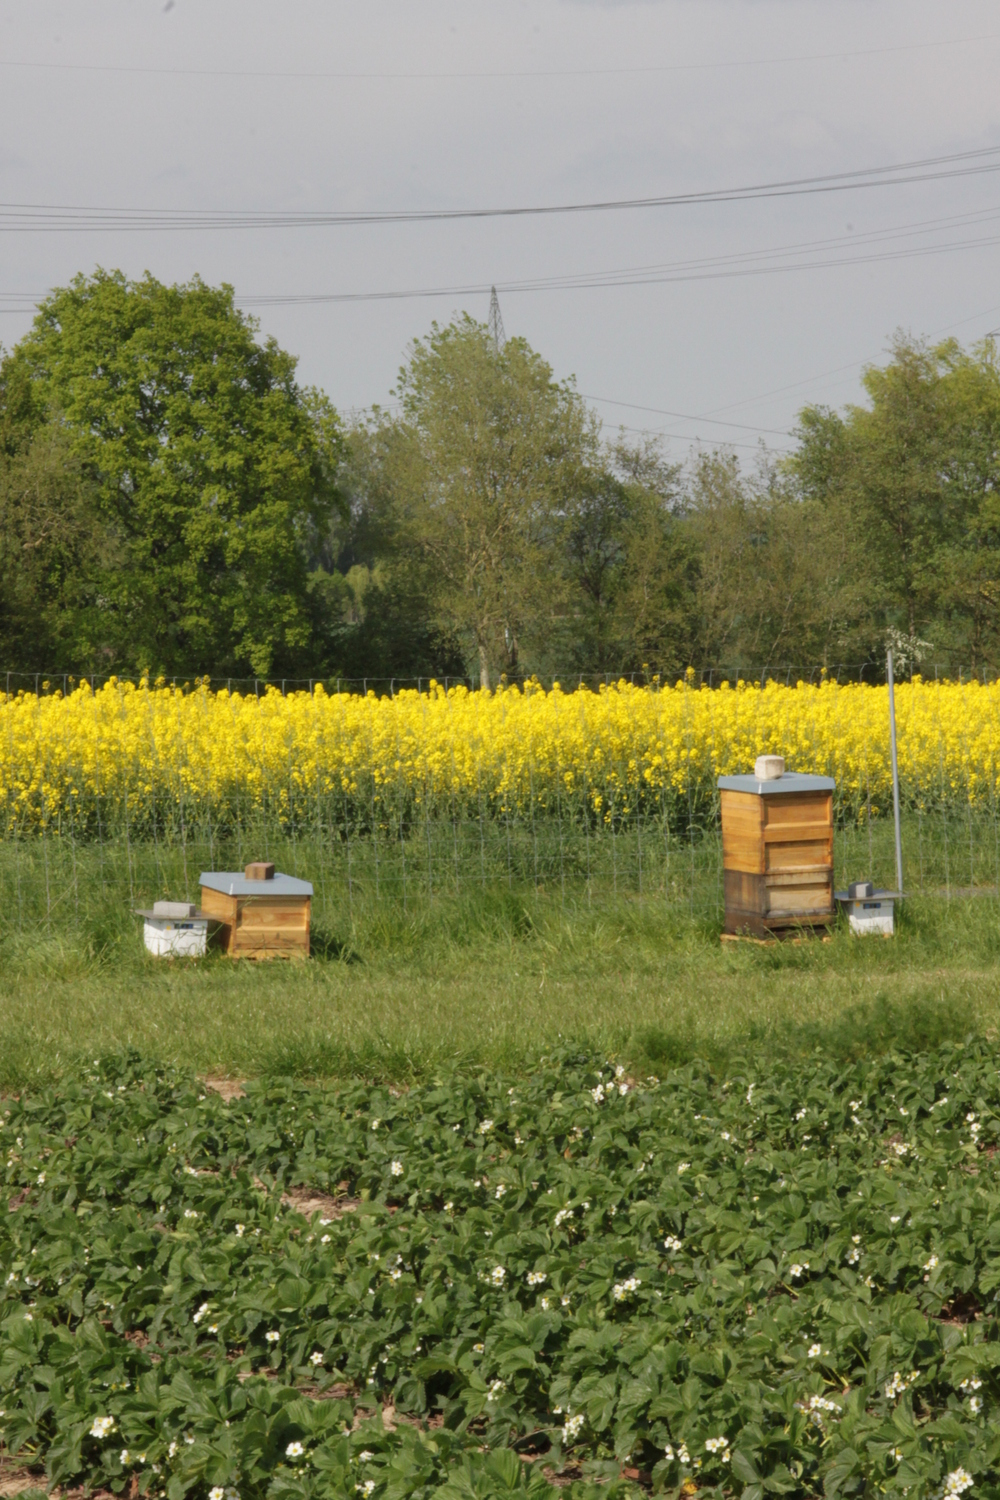 The research team put honey bees and bumble bees colonies next to an experimental field.